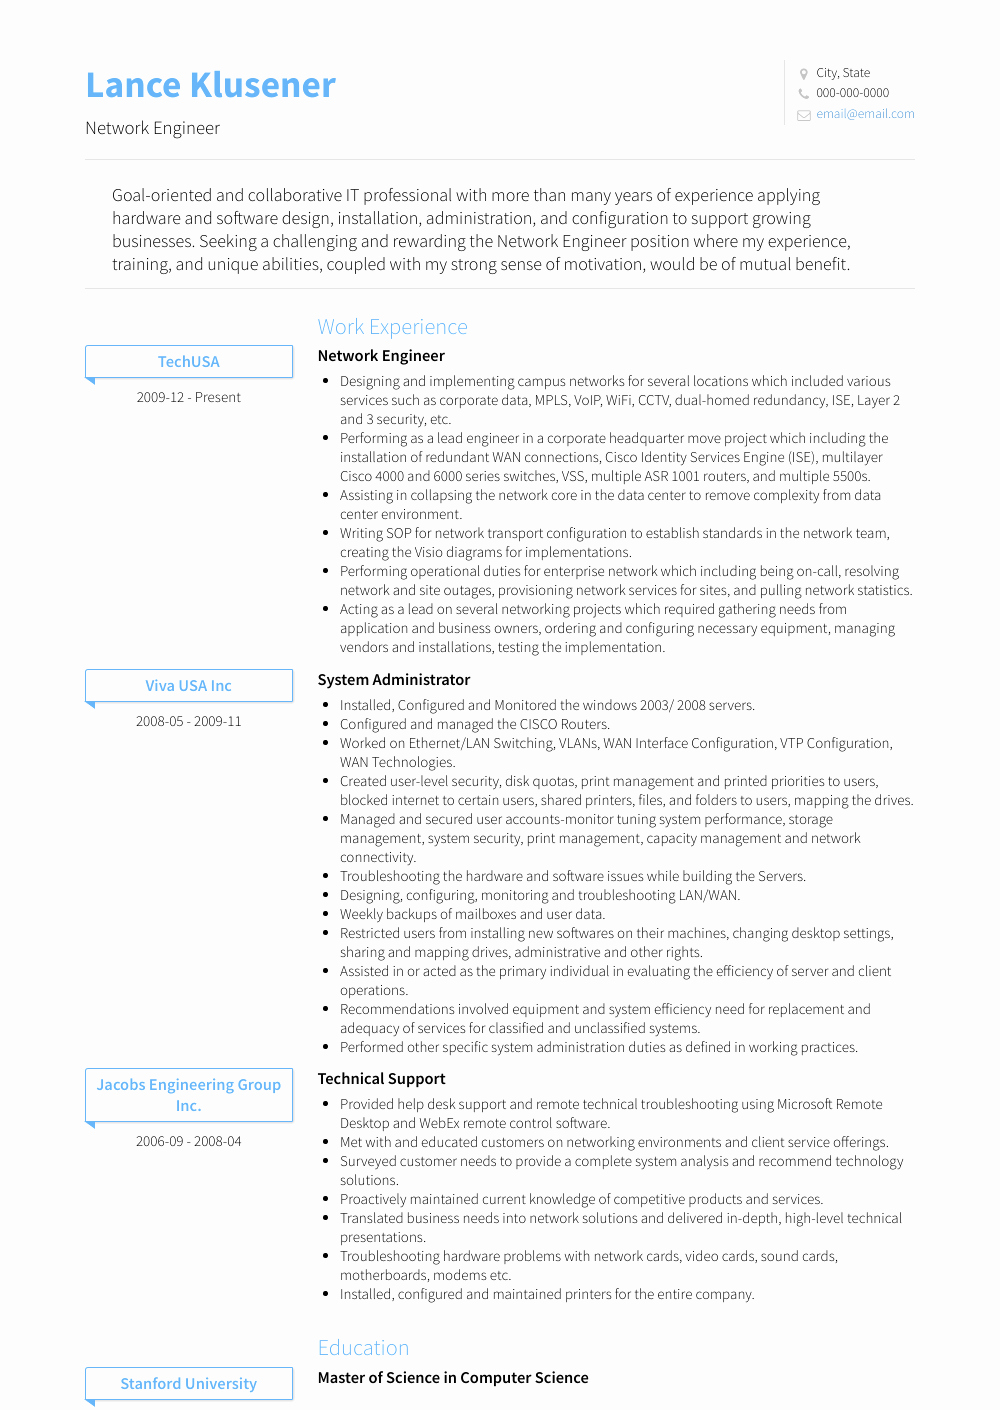 Network Engineer Resume Sample Lovely Network Engineer Resume Samples & Templates